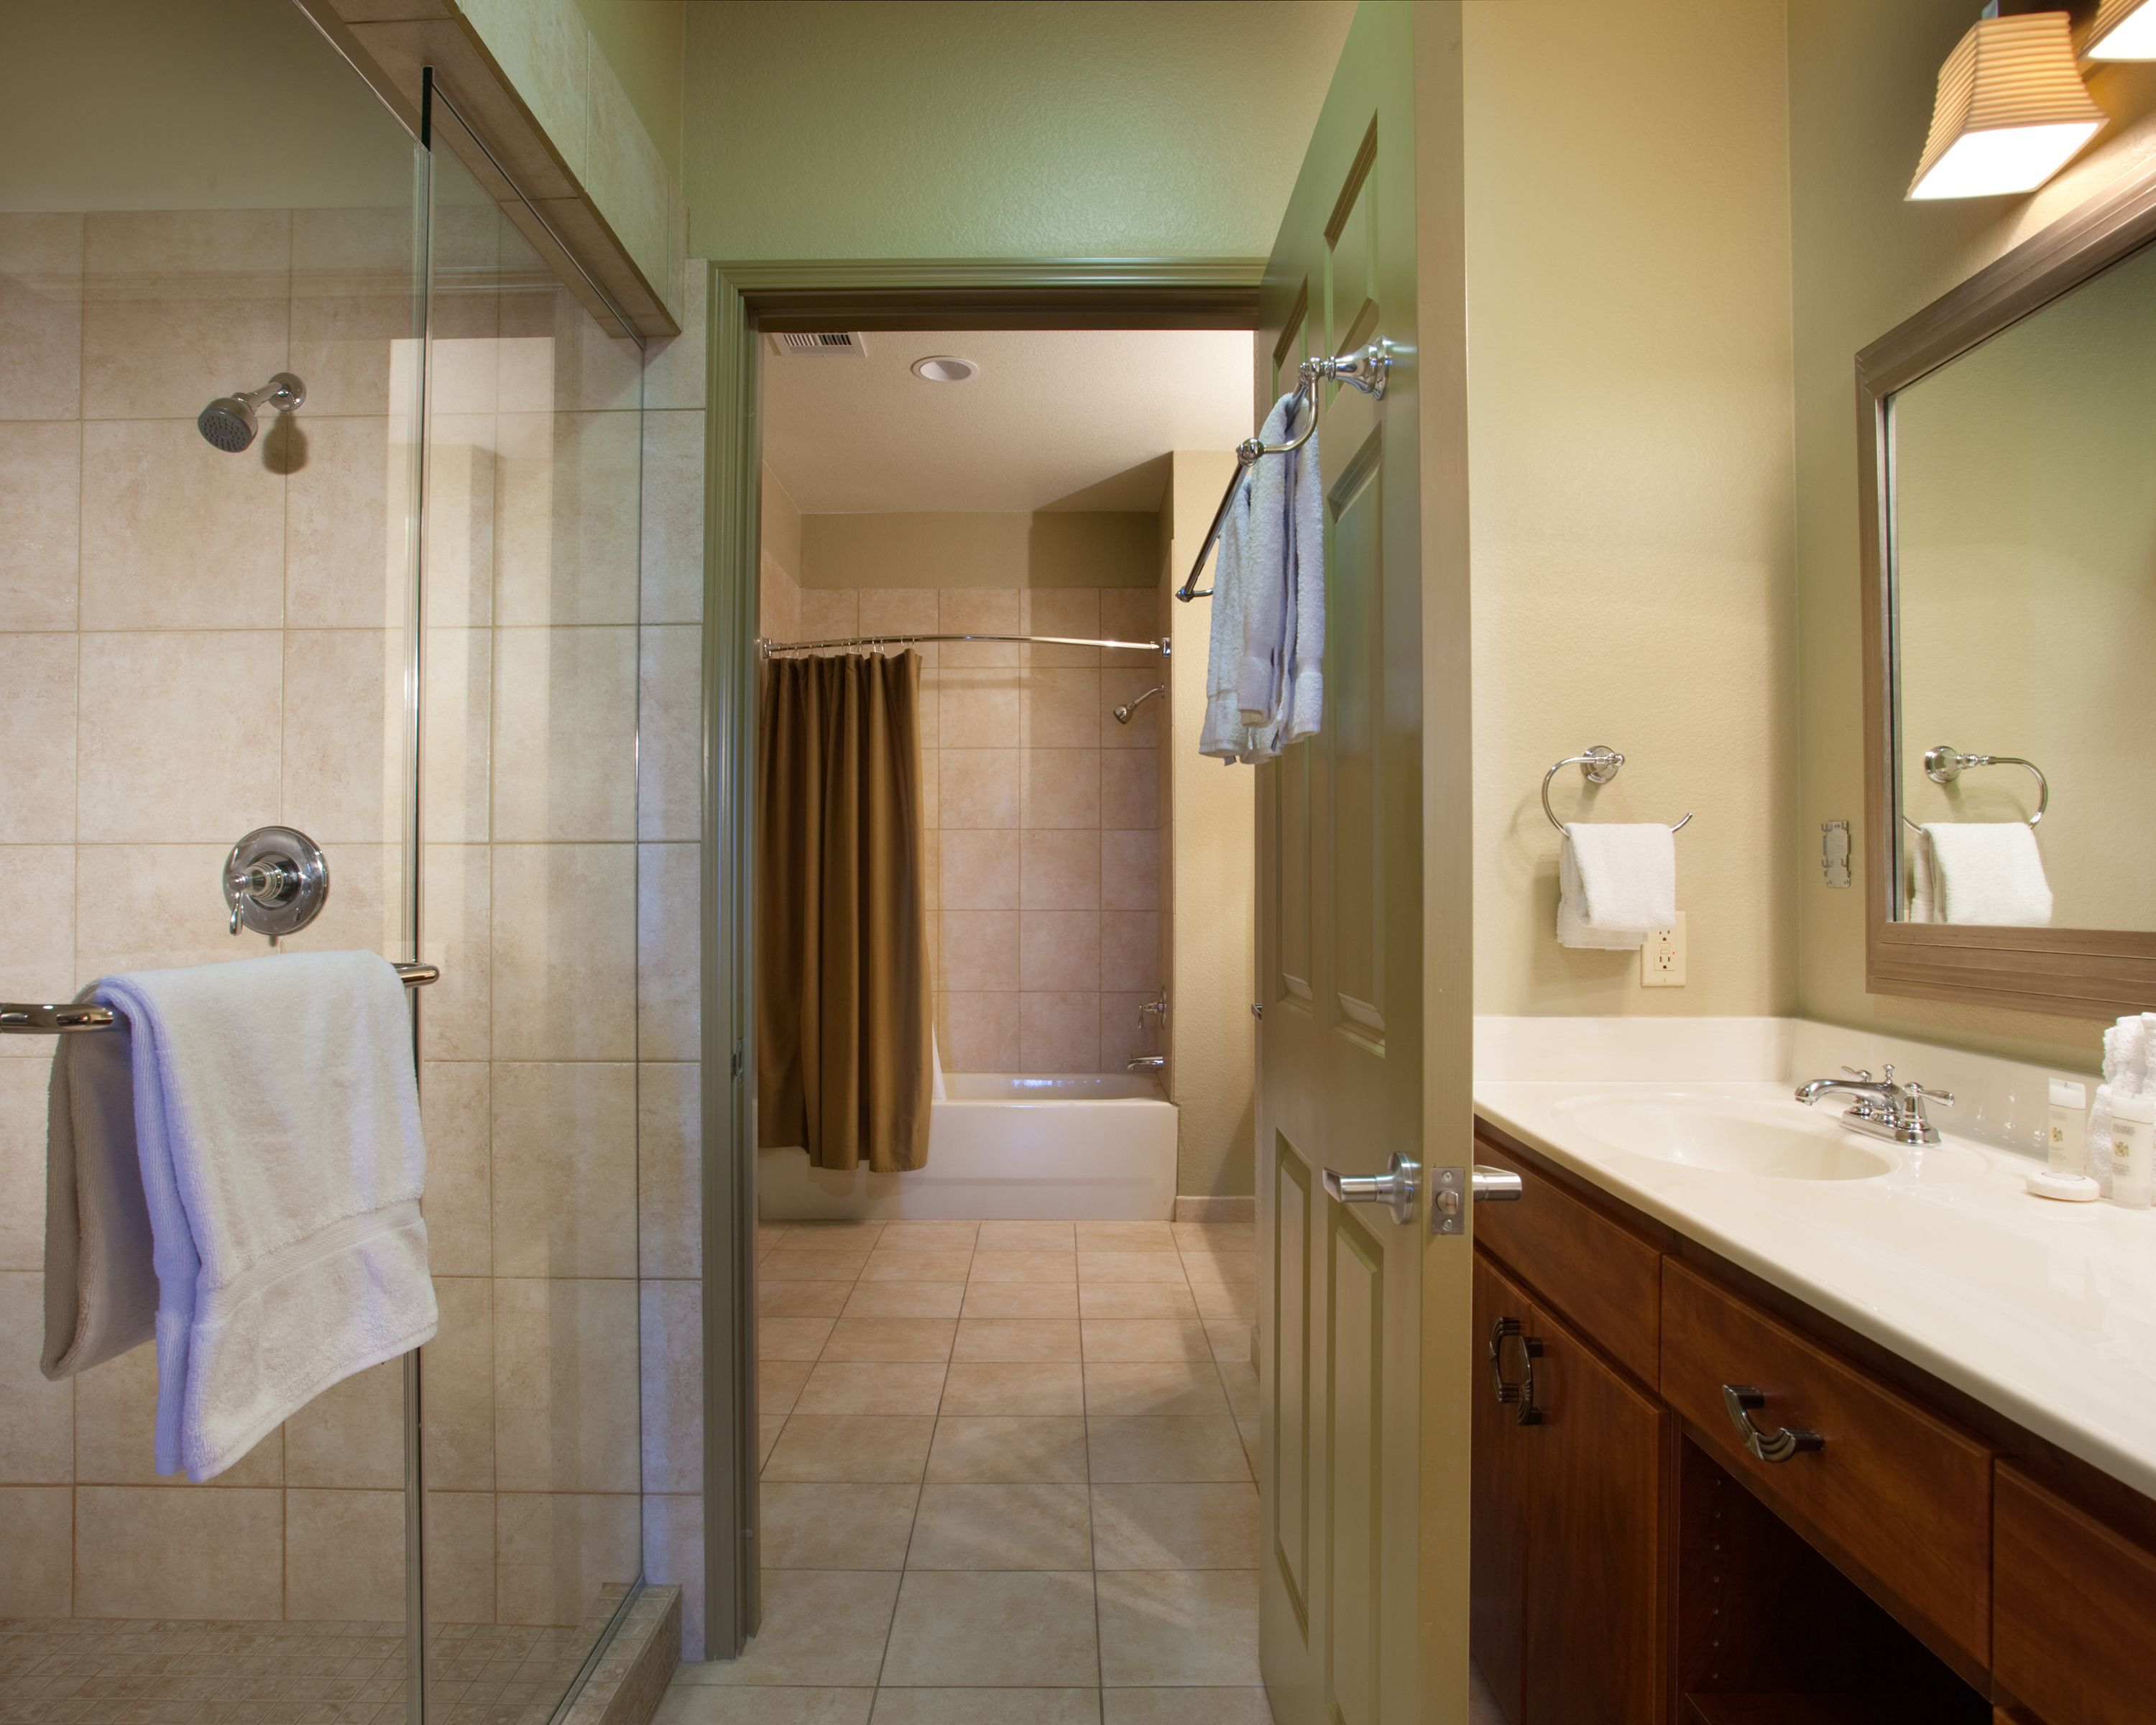 Well Ointed Bathrooms Provide The Ultimate In Comfort During Your Honeymoon To Bluegreen Vacations Club An Ascend Resort Las Vegas Nv